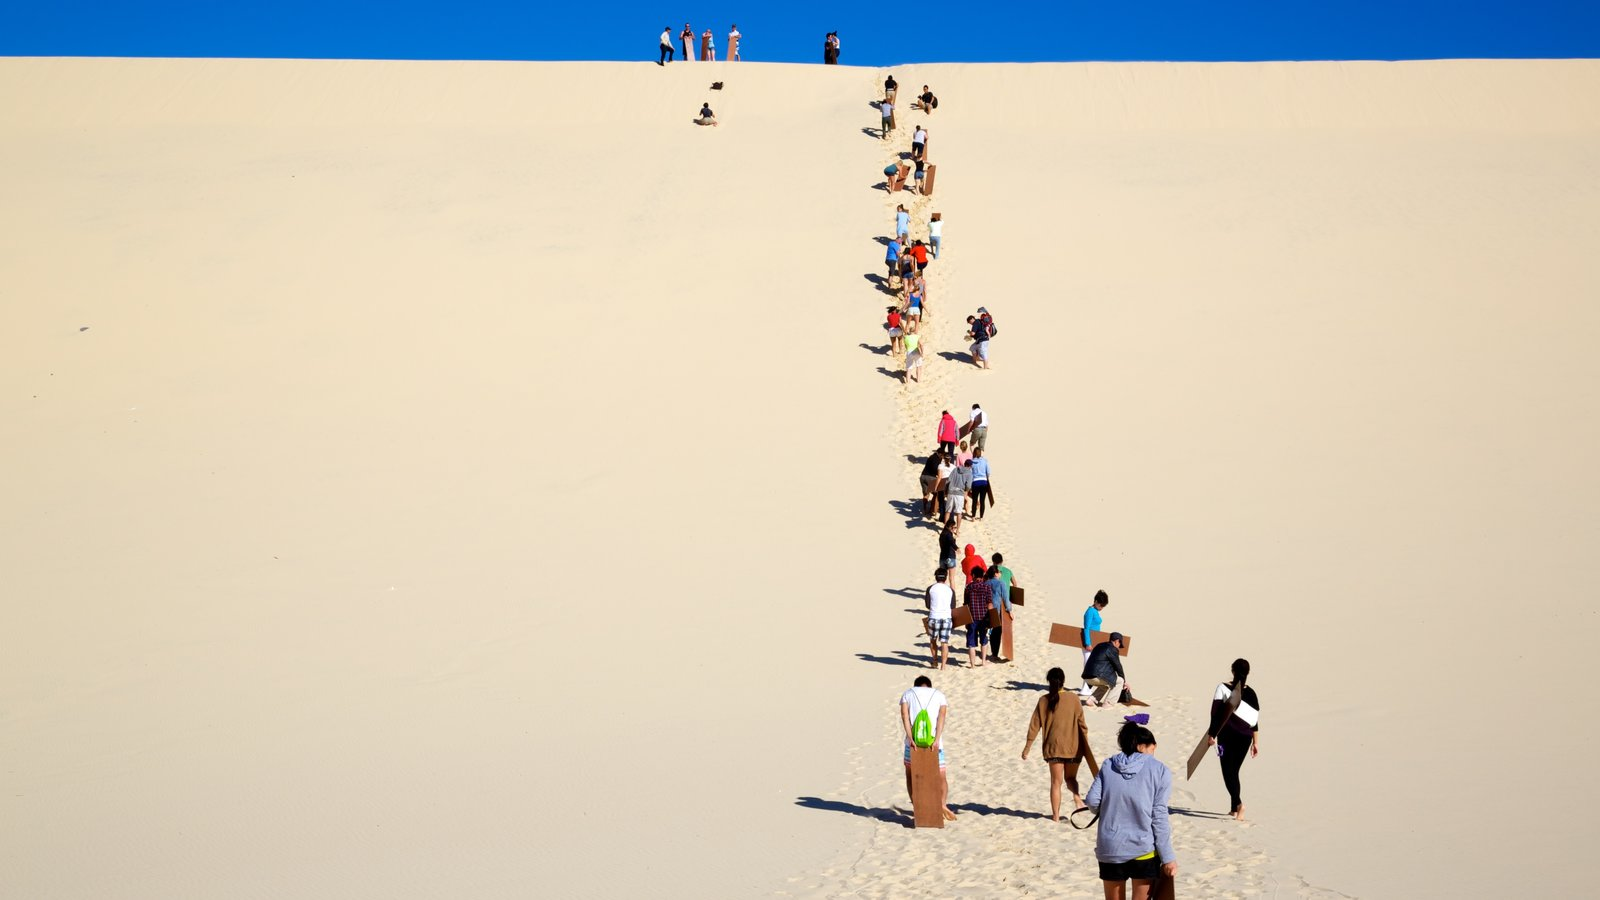 Moreton Island National Park which includes desert views as well as a large group of people